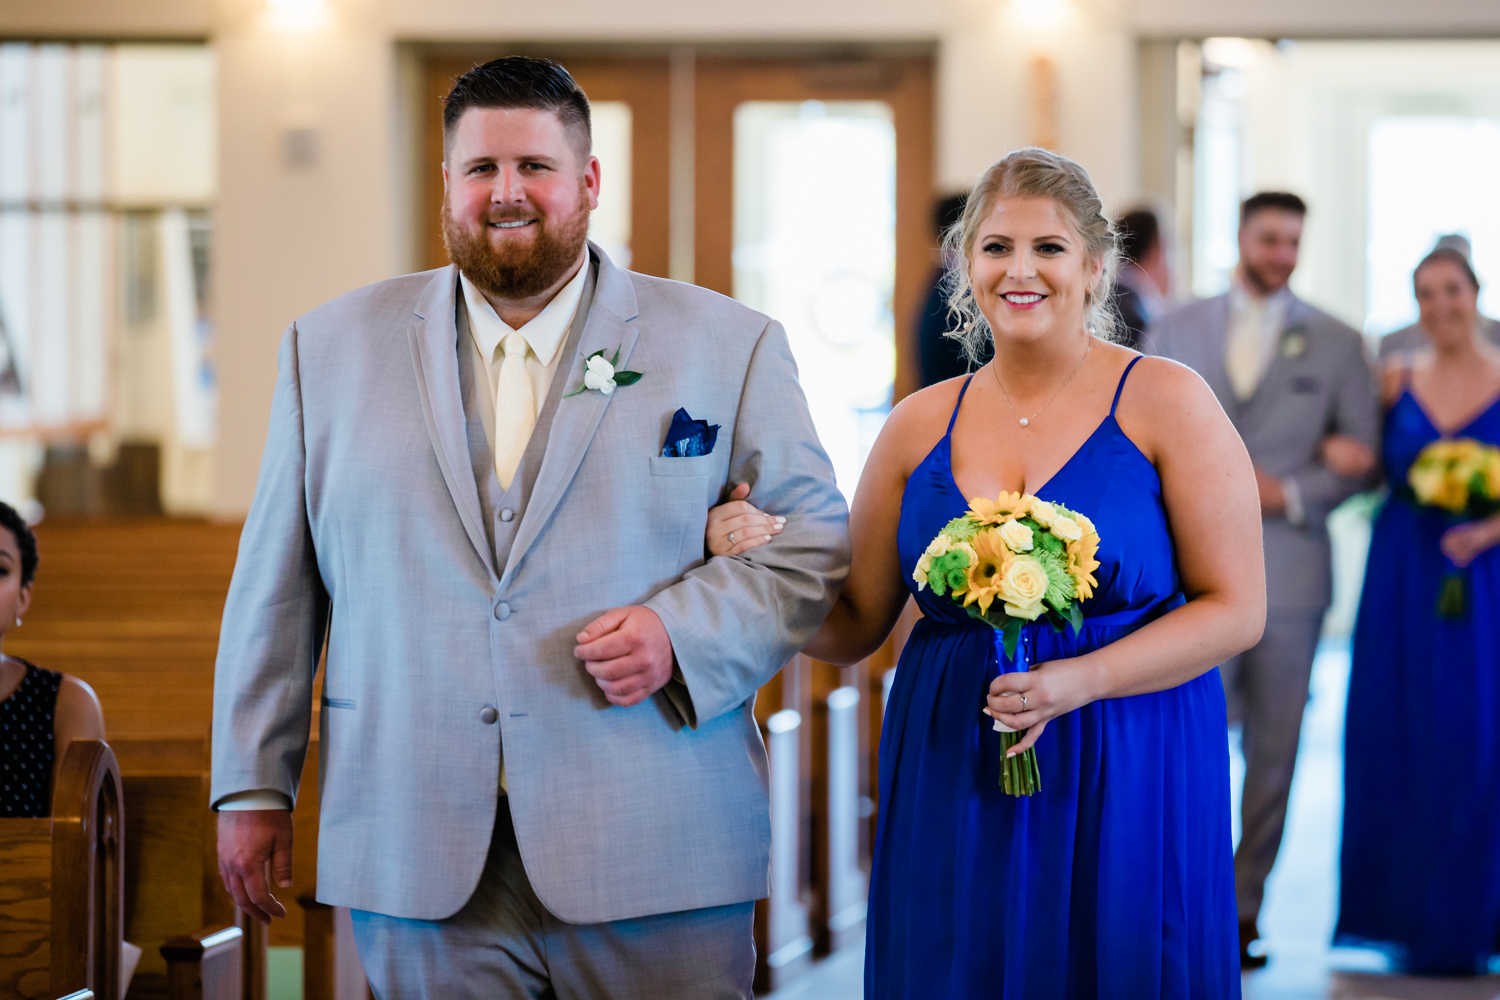 bridal party makes their way down the aisle at church in Westminster, MD - royal blue and yellow wedding color scheme